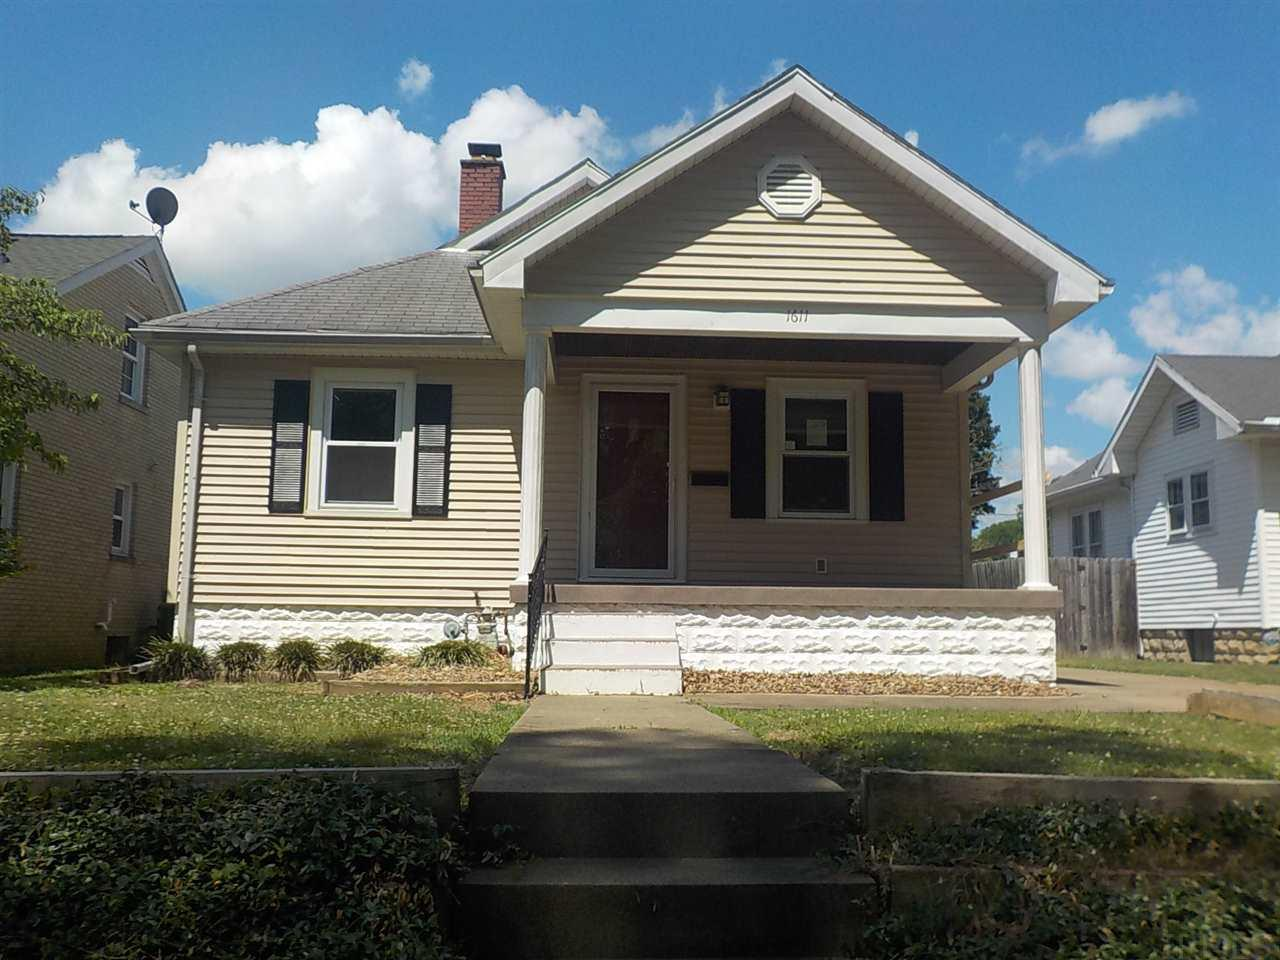 1611 Hollywood, Evansville, IN 47712